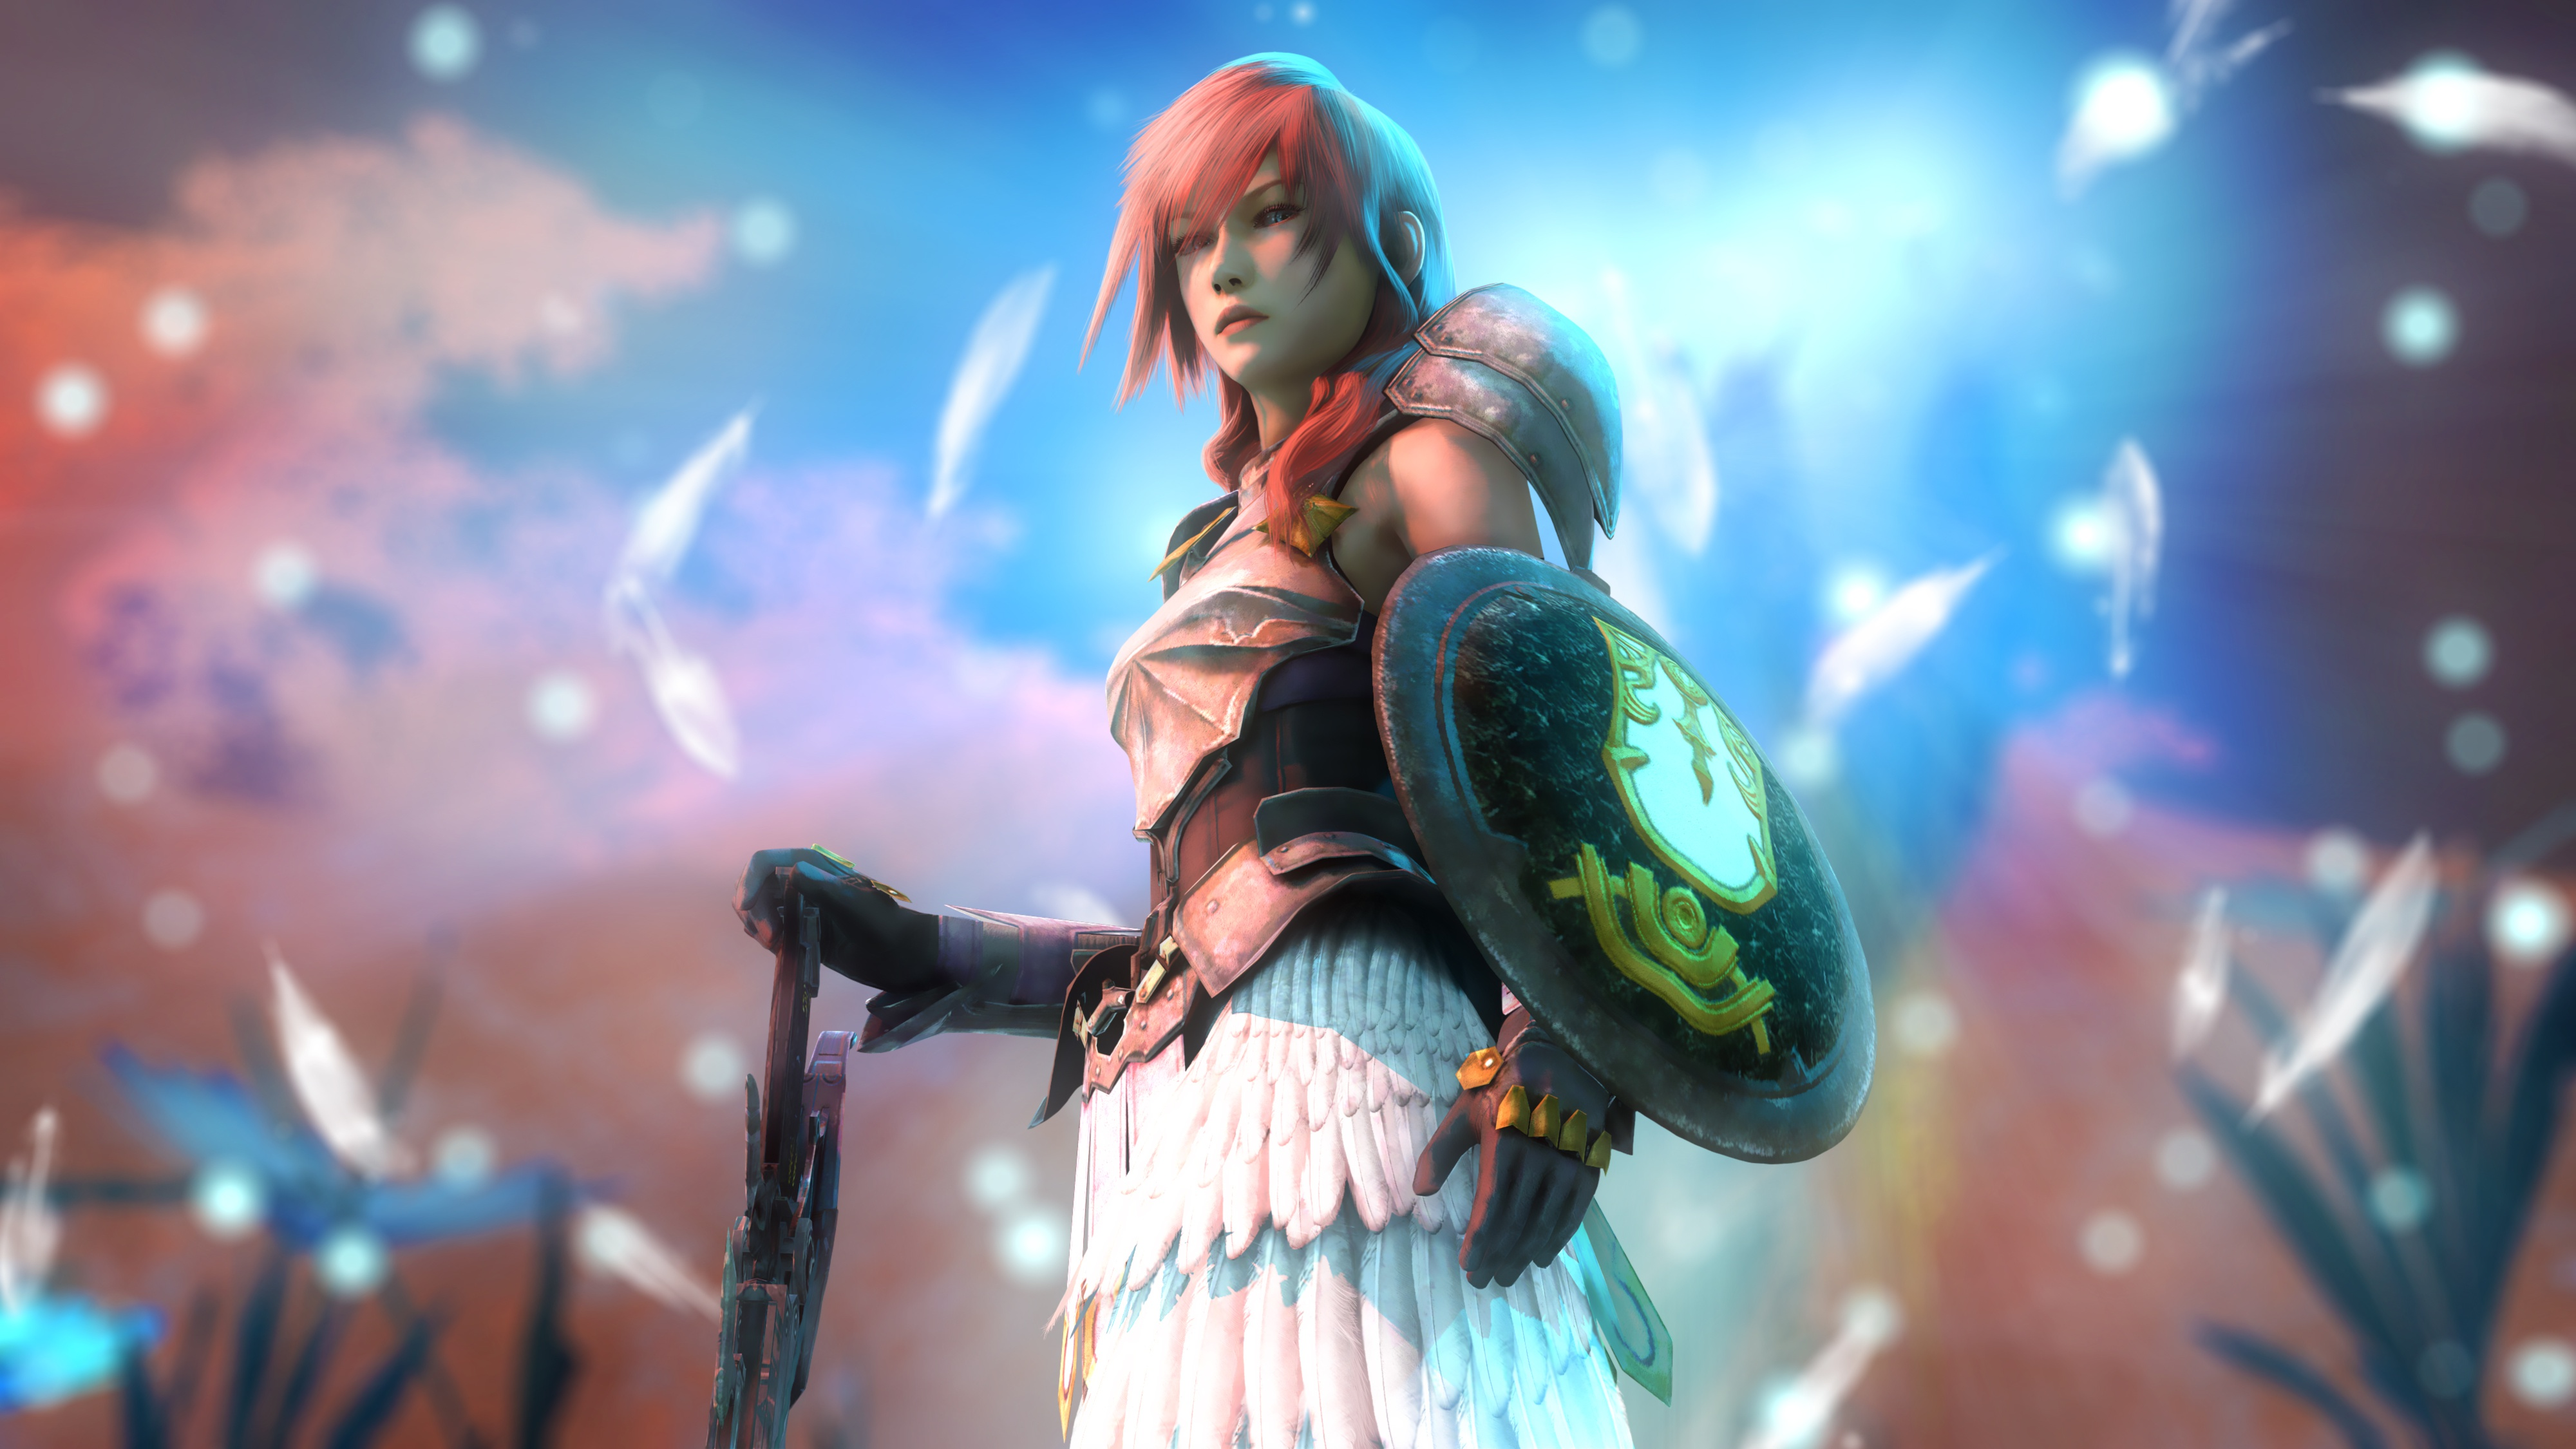 Final Fantasy 4k Hd Games 4k Wallpapers Images: 3840x2160 Claire Farron Final Fantasy Video Game Artwork